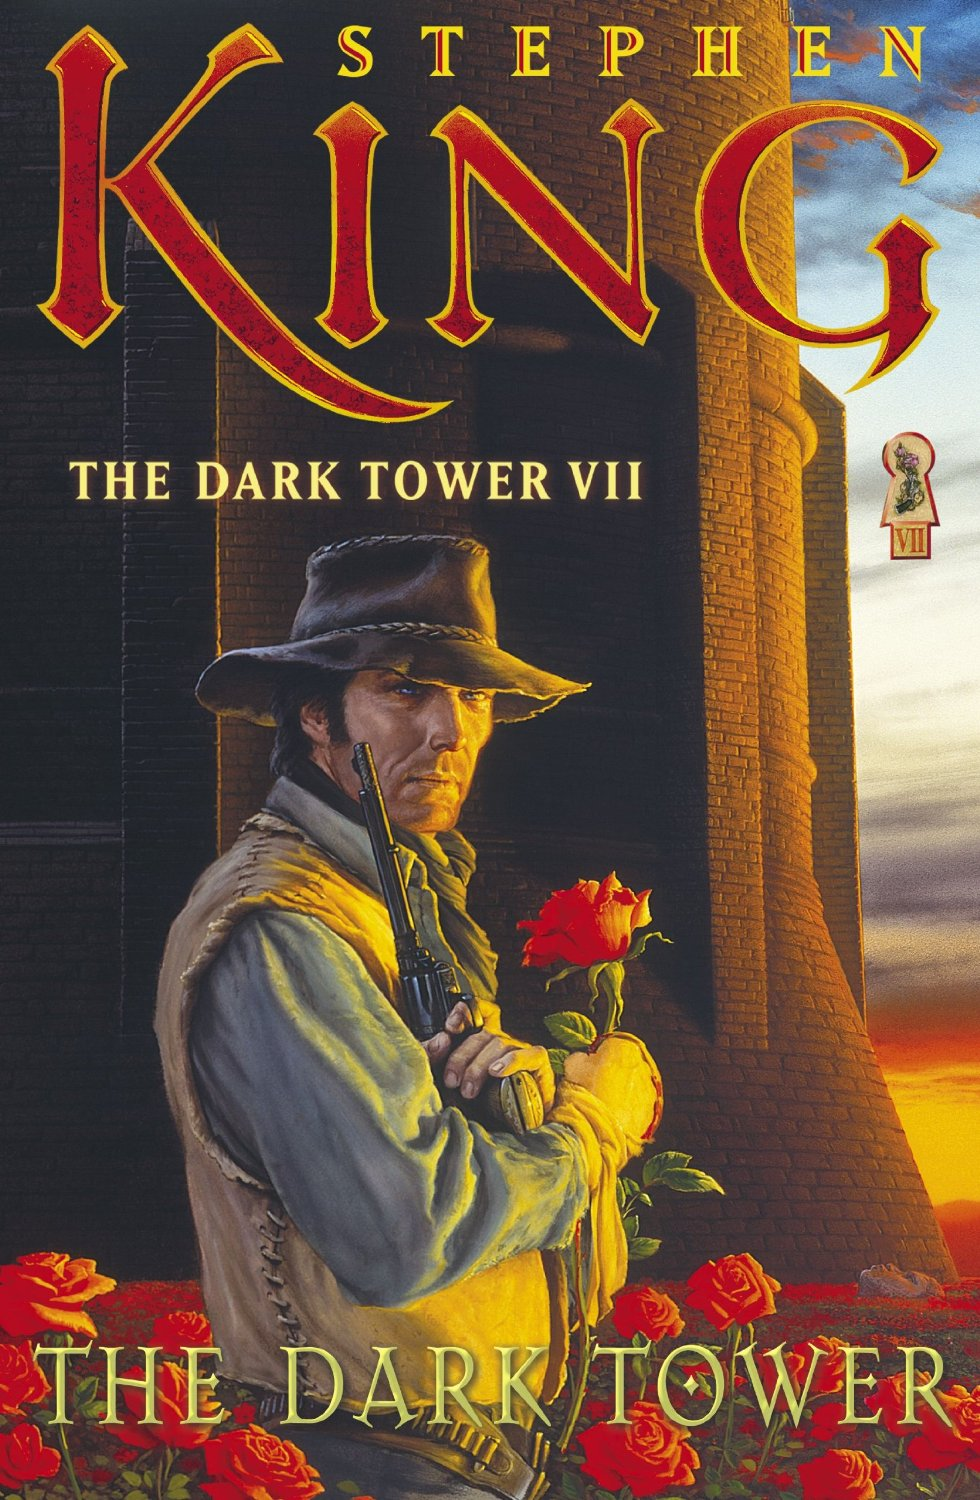 a review of the stand by stephen king The stand by stephen king 279k likes stephen king's apocalyptic vision of a world blasted by plague and tangled in an elemental struggle between good.